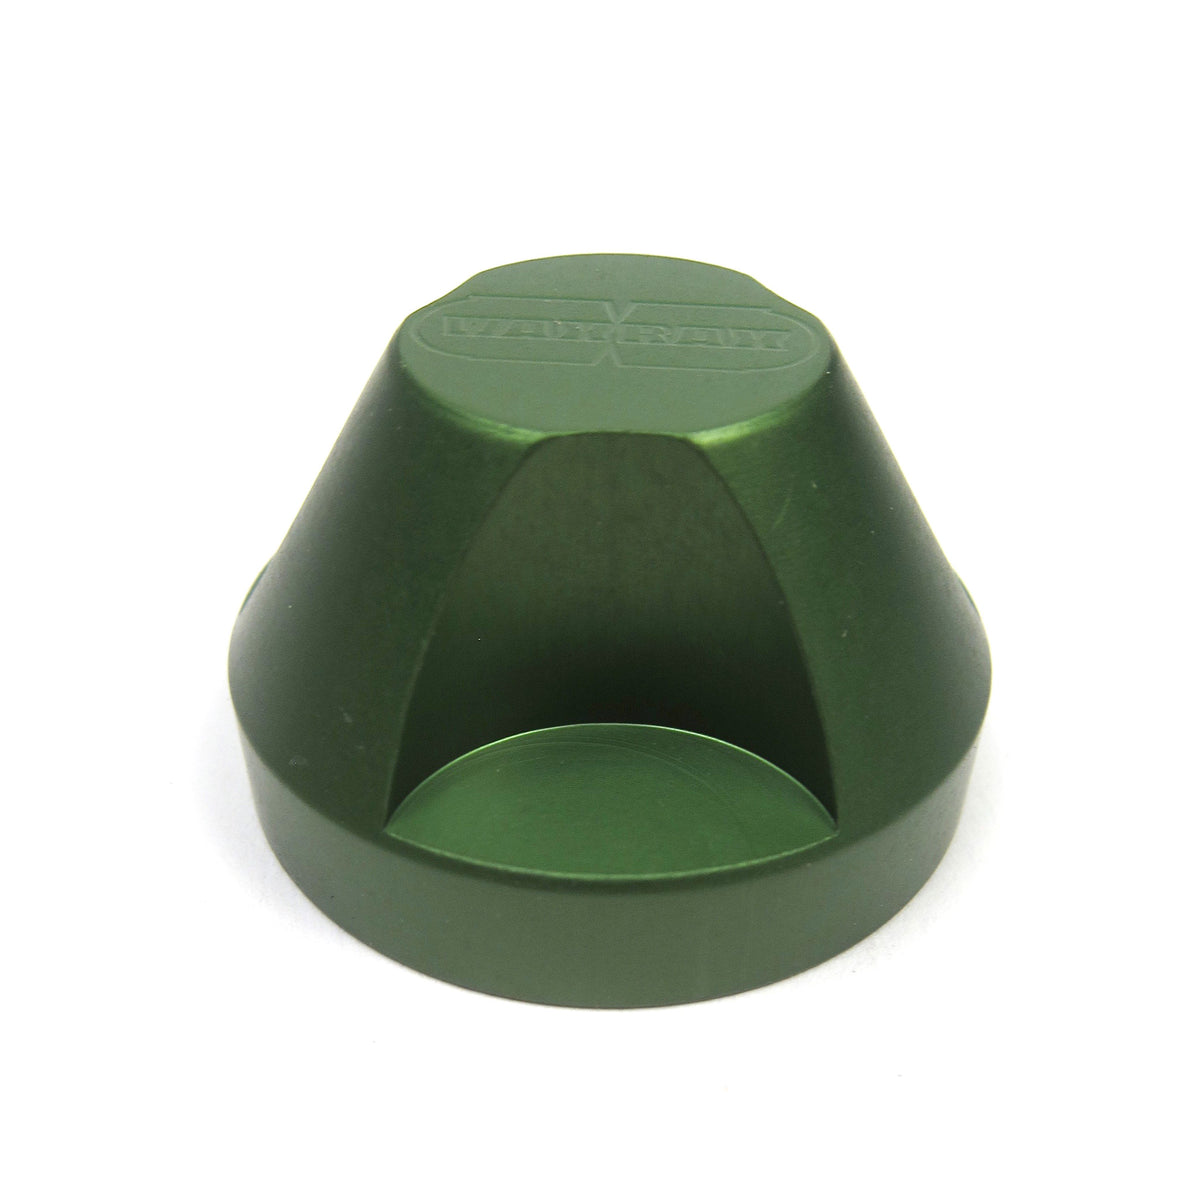 Wax Rax: 45A - 45 Adaptor - Green